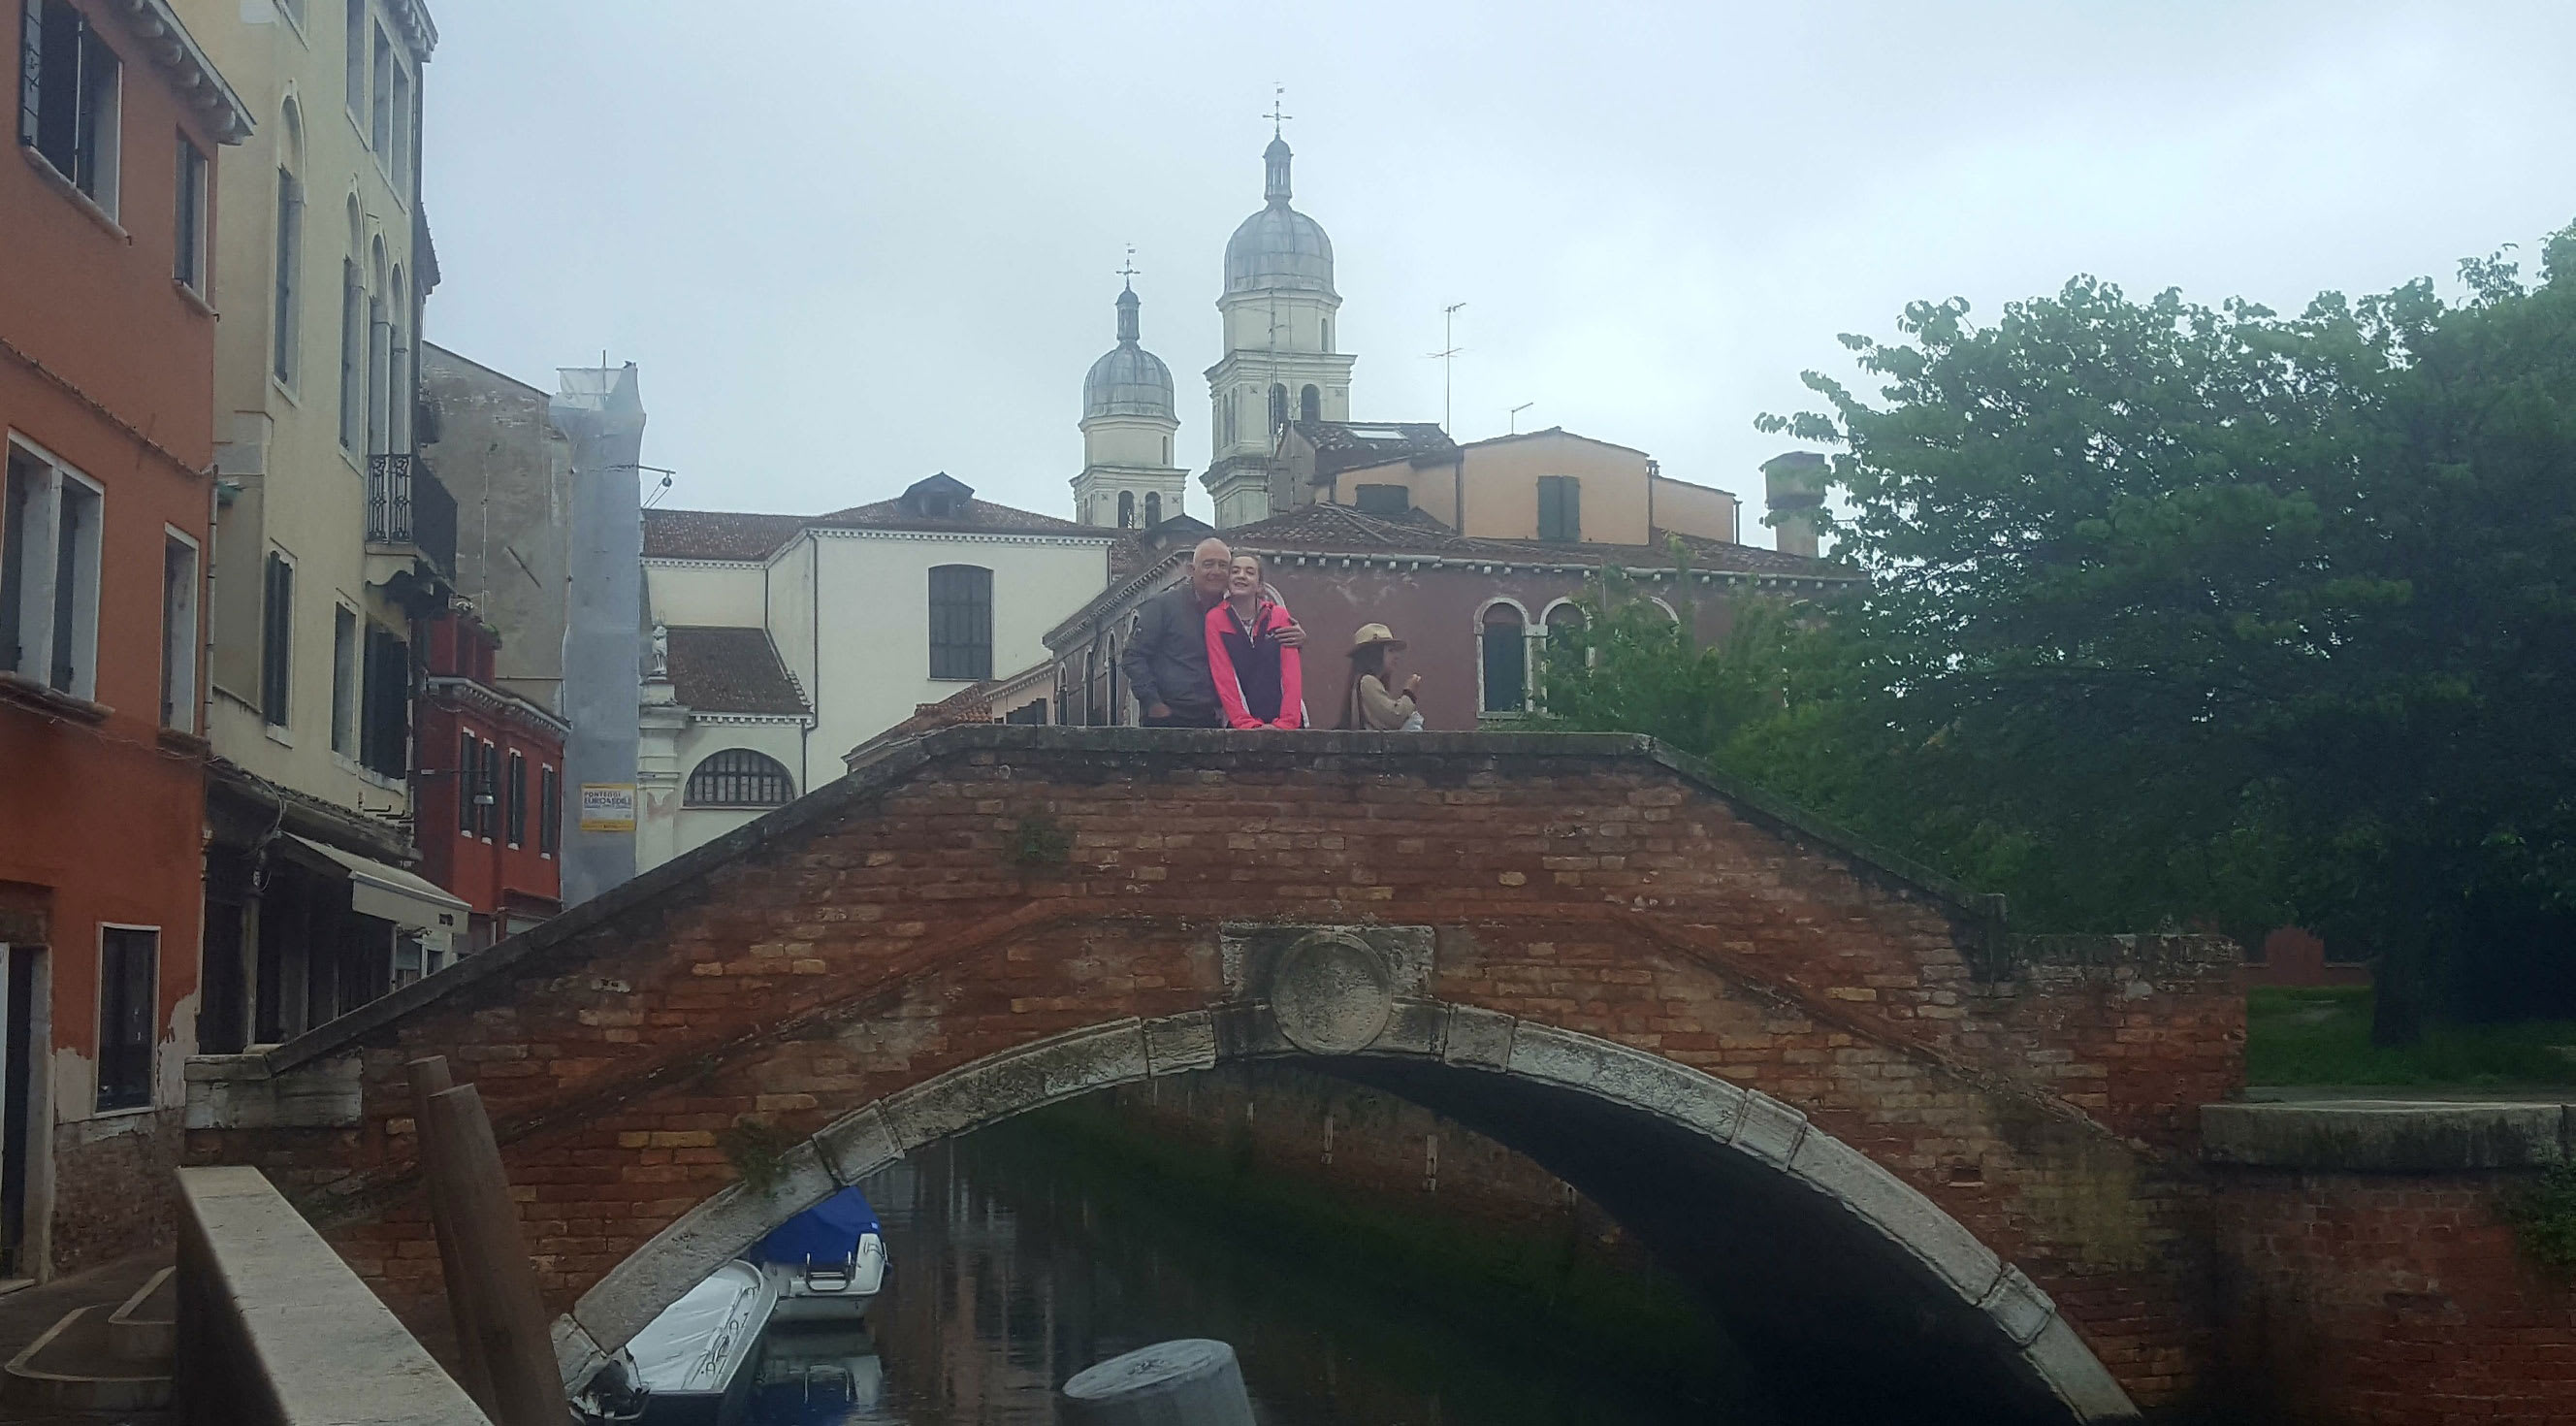 Fater and daughter on bridge in Venice